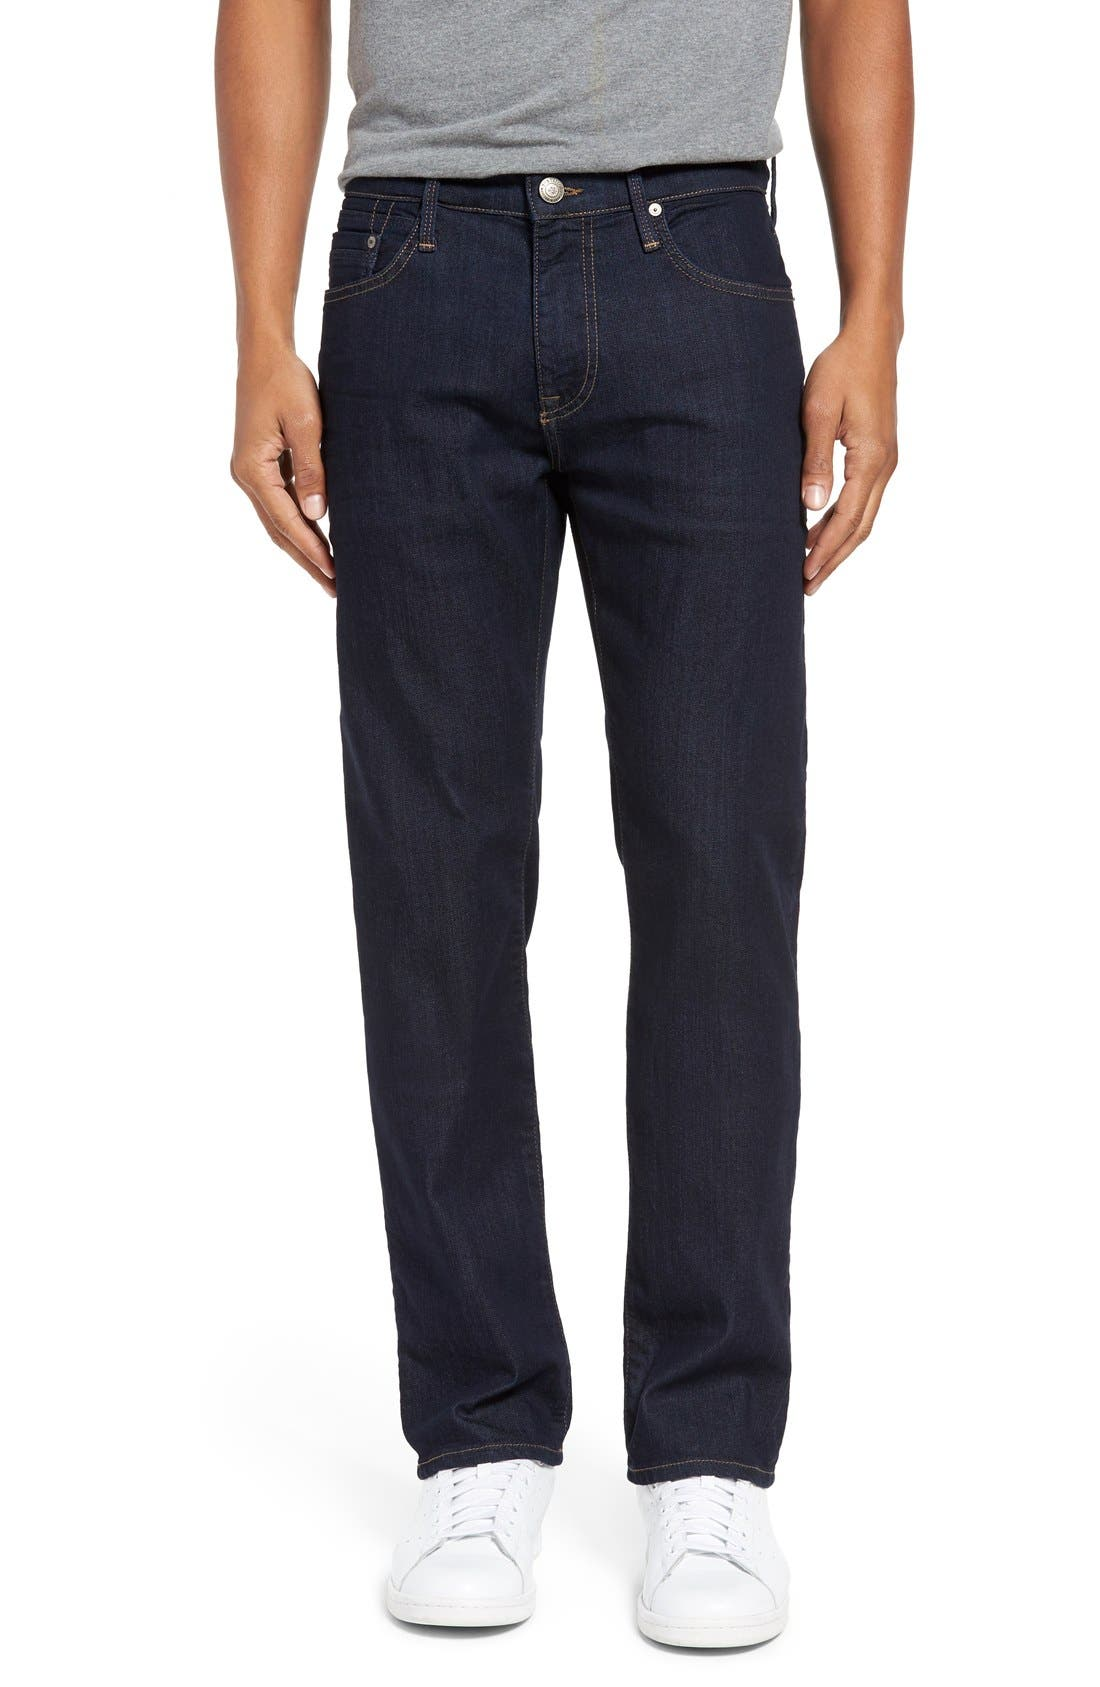 'Zach' Straight Leg Jeans,                             Main thumbnail 1, color,                             Dark Blue